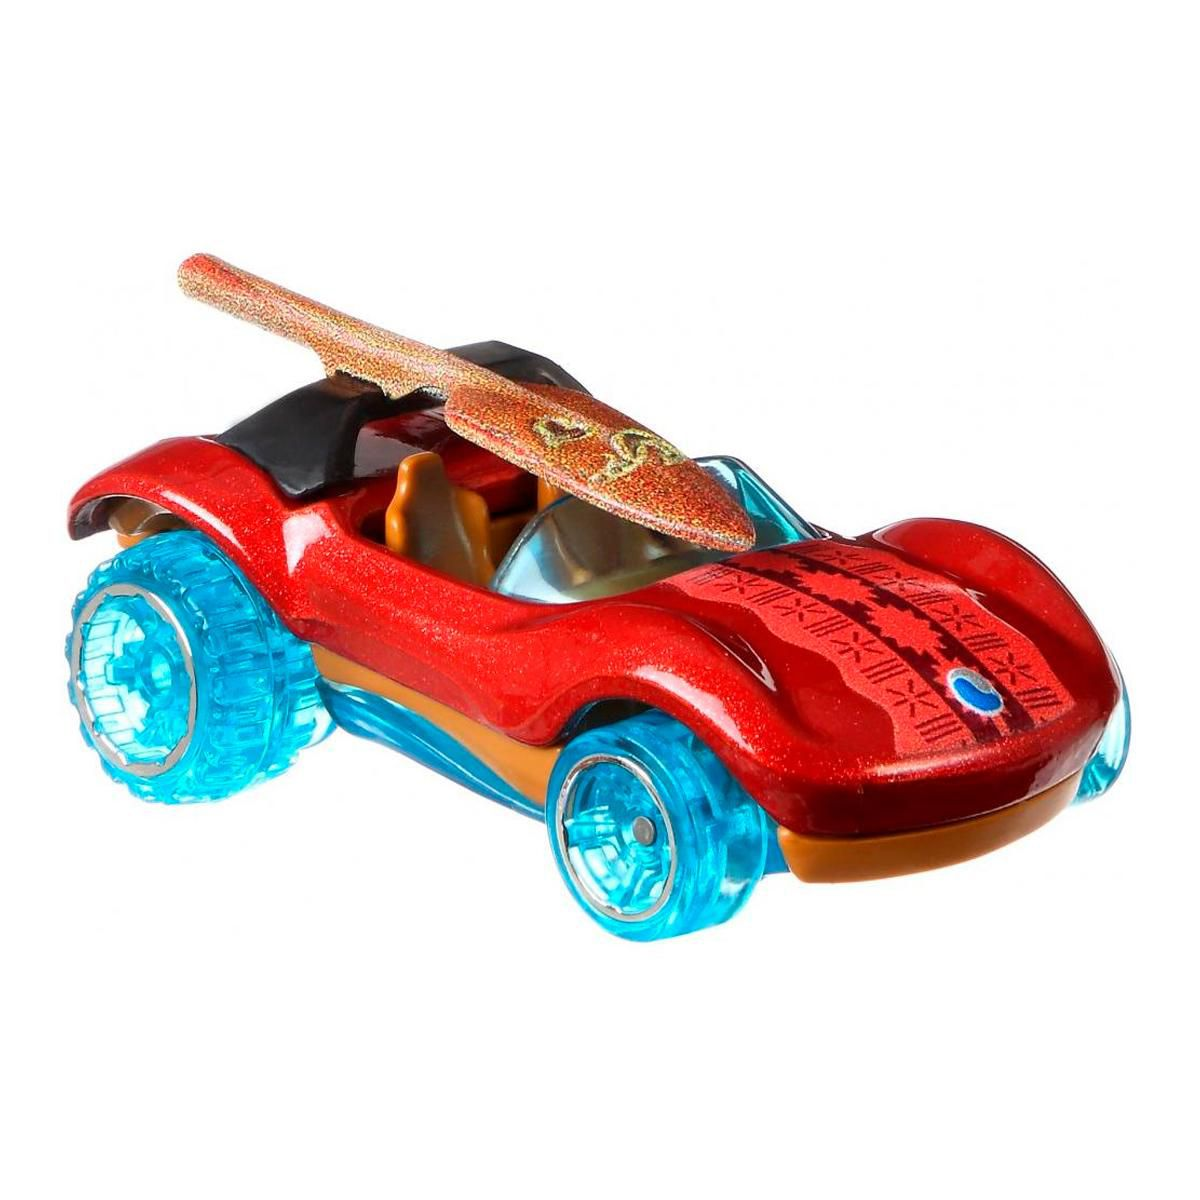 Carrinho Hot Wheels Moana: Disney (Series 4) - Mattel